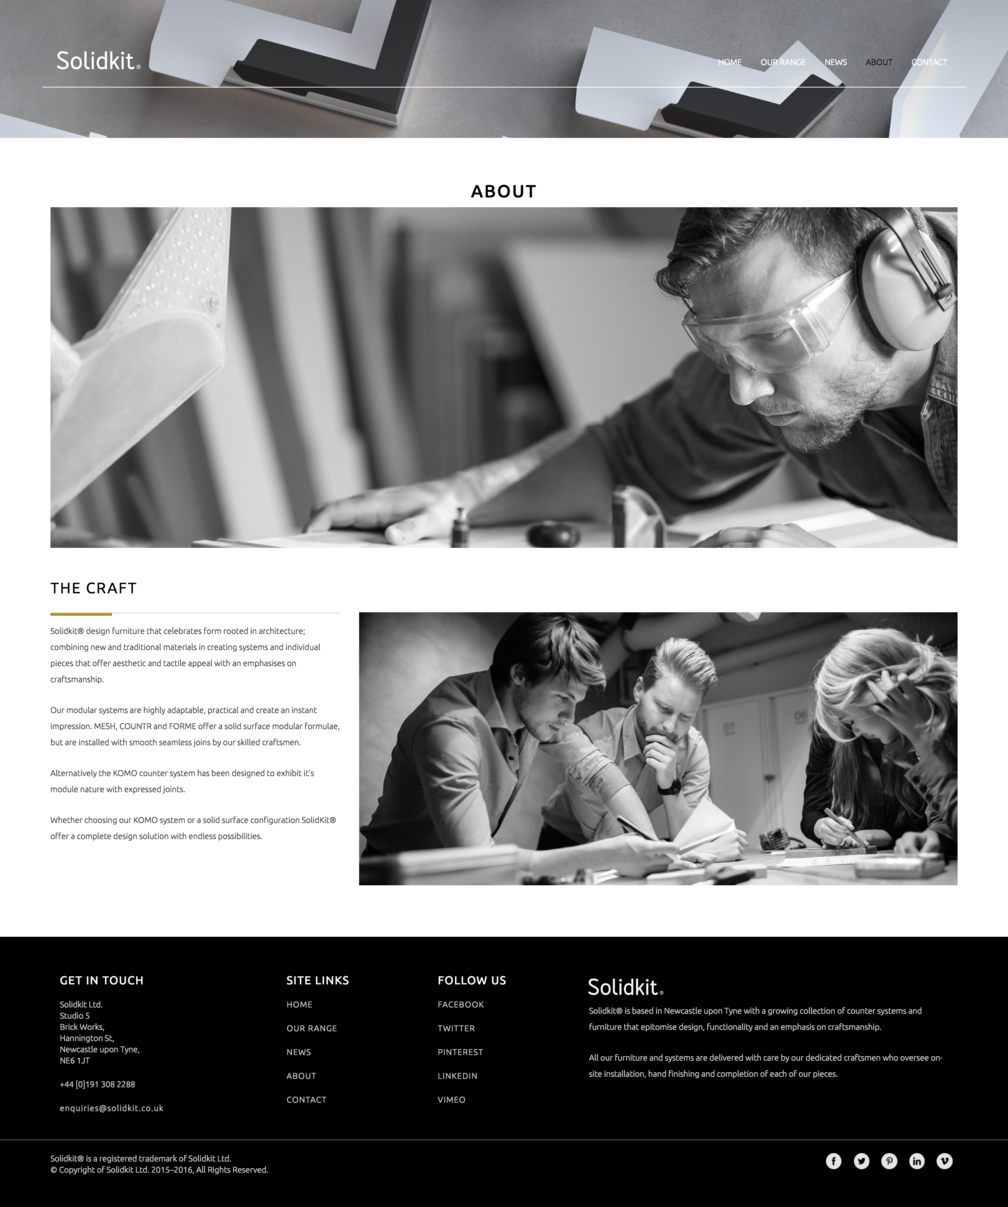 About page design for Solidkit